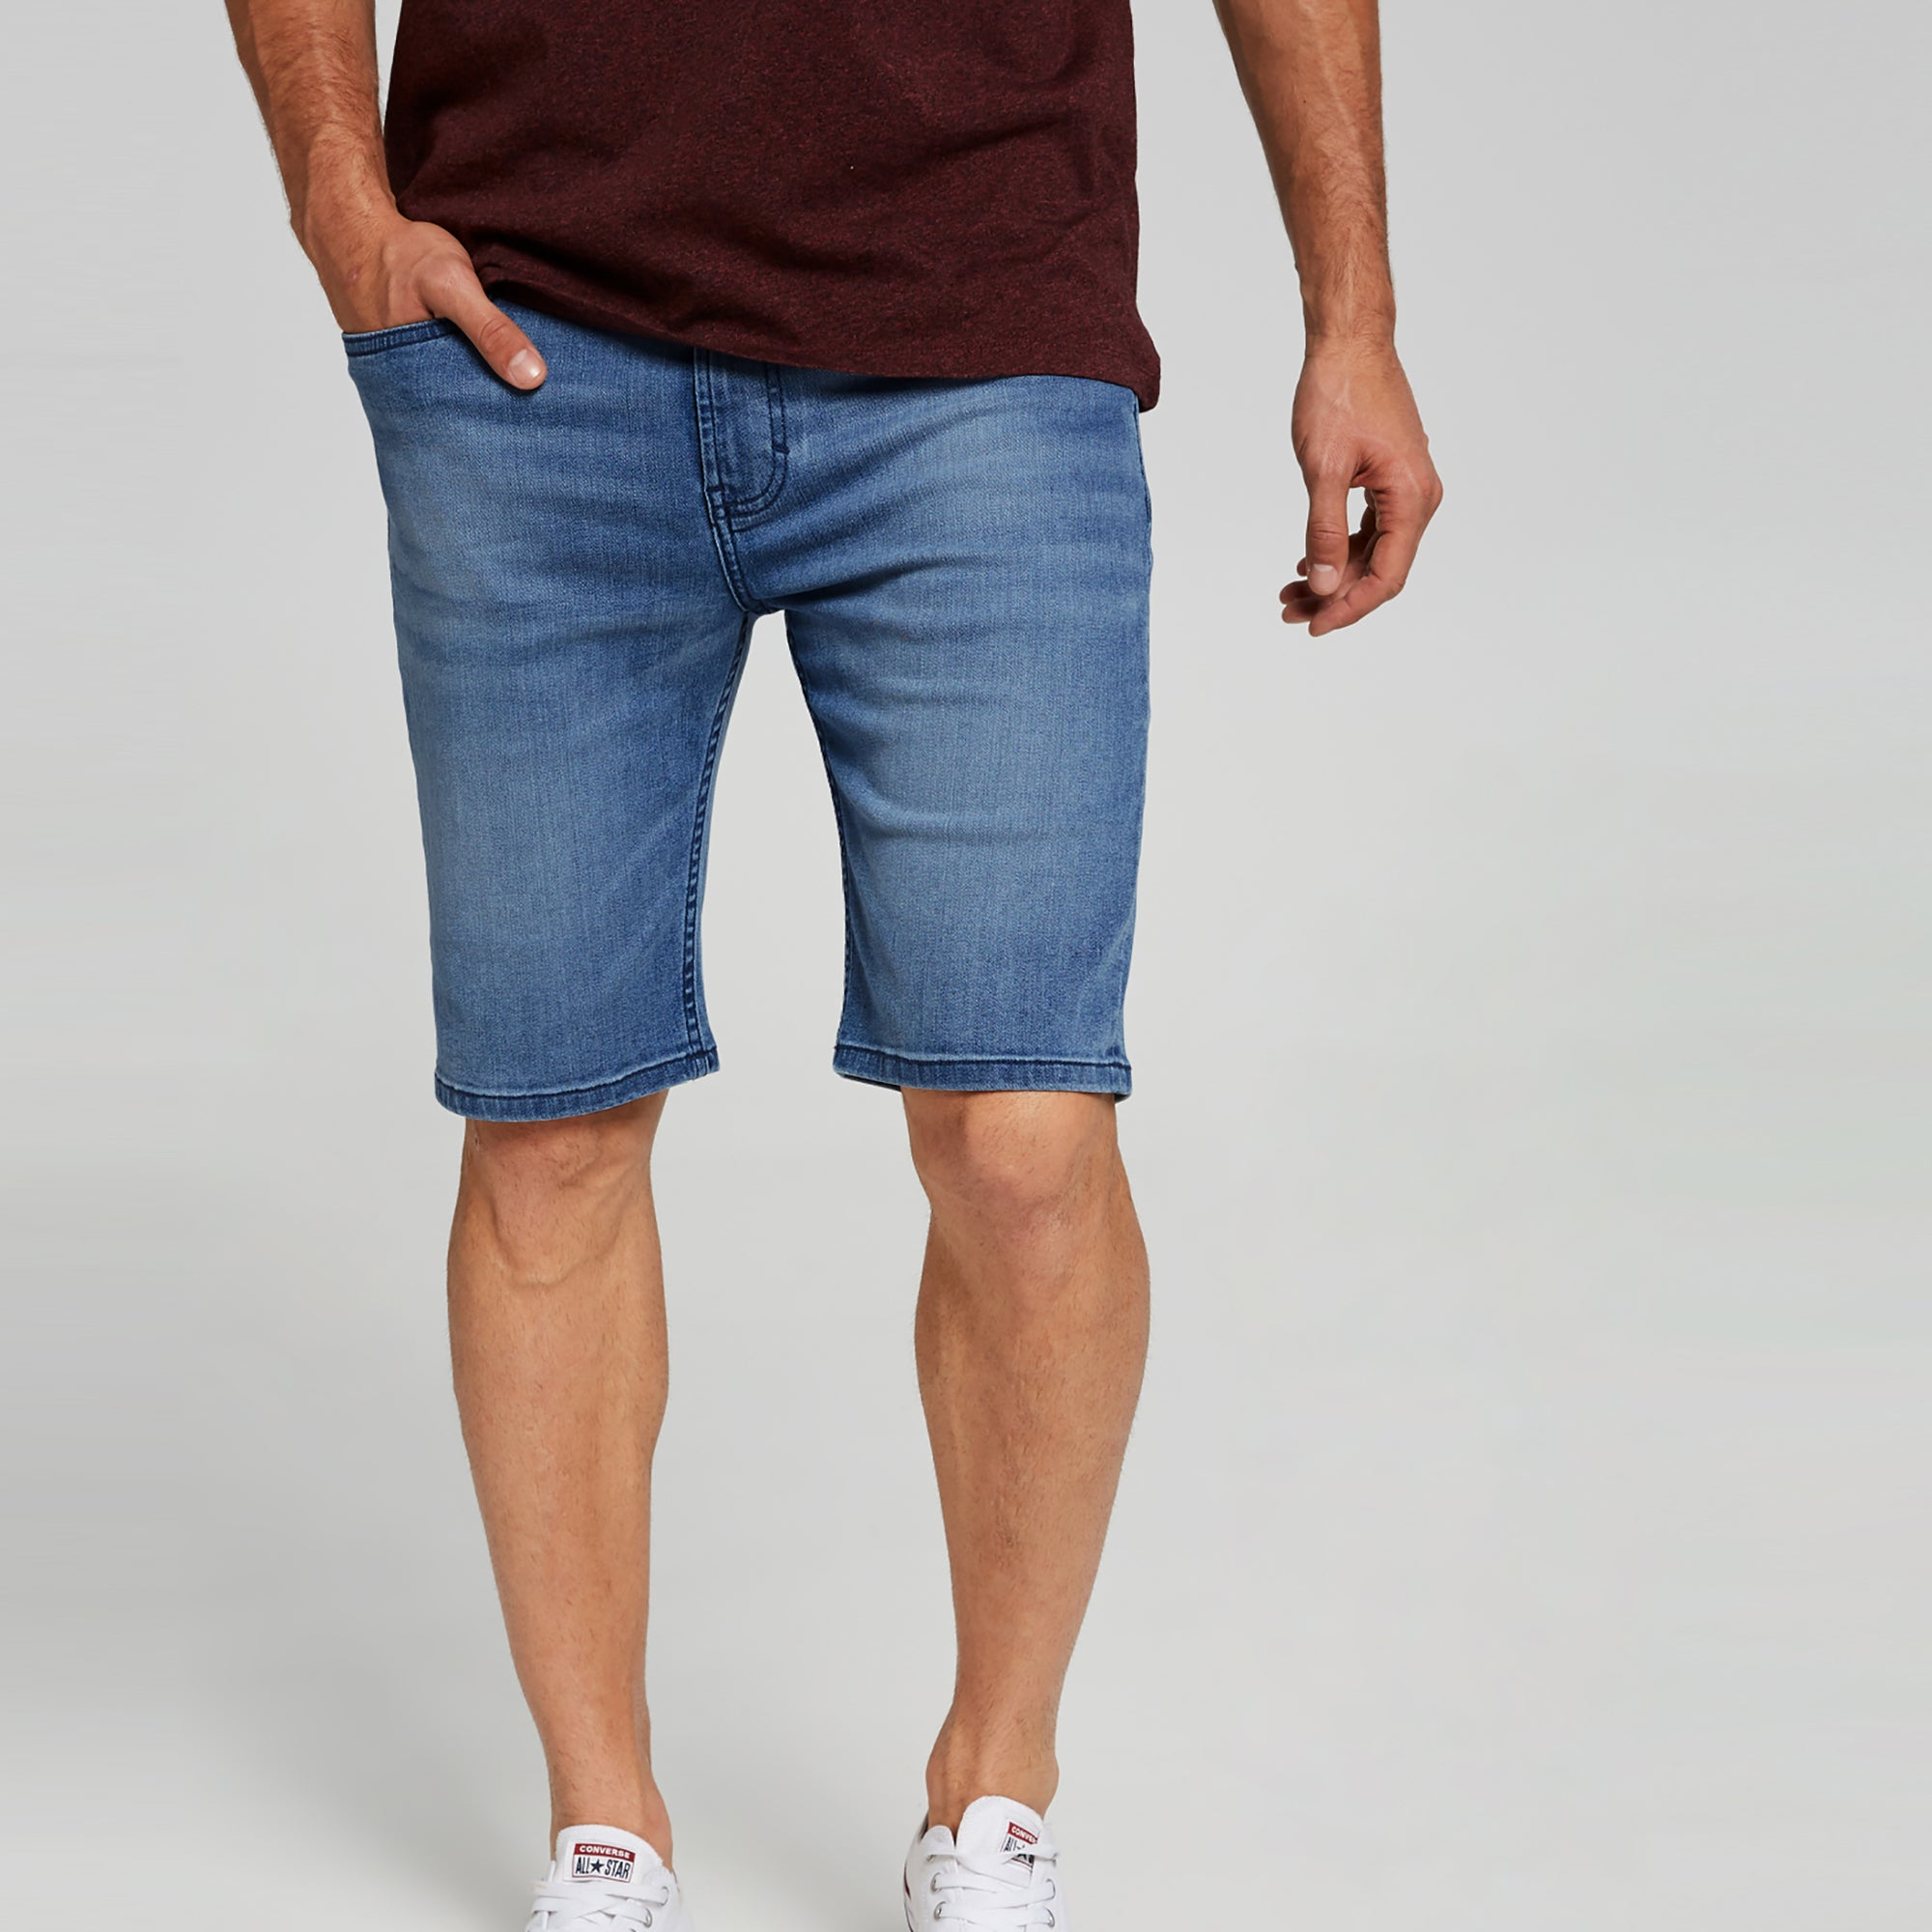 c8a260d260 B&Y Denim Short For Men- Light Navy Fadeed-SP064 - BrandsEgo